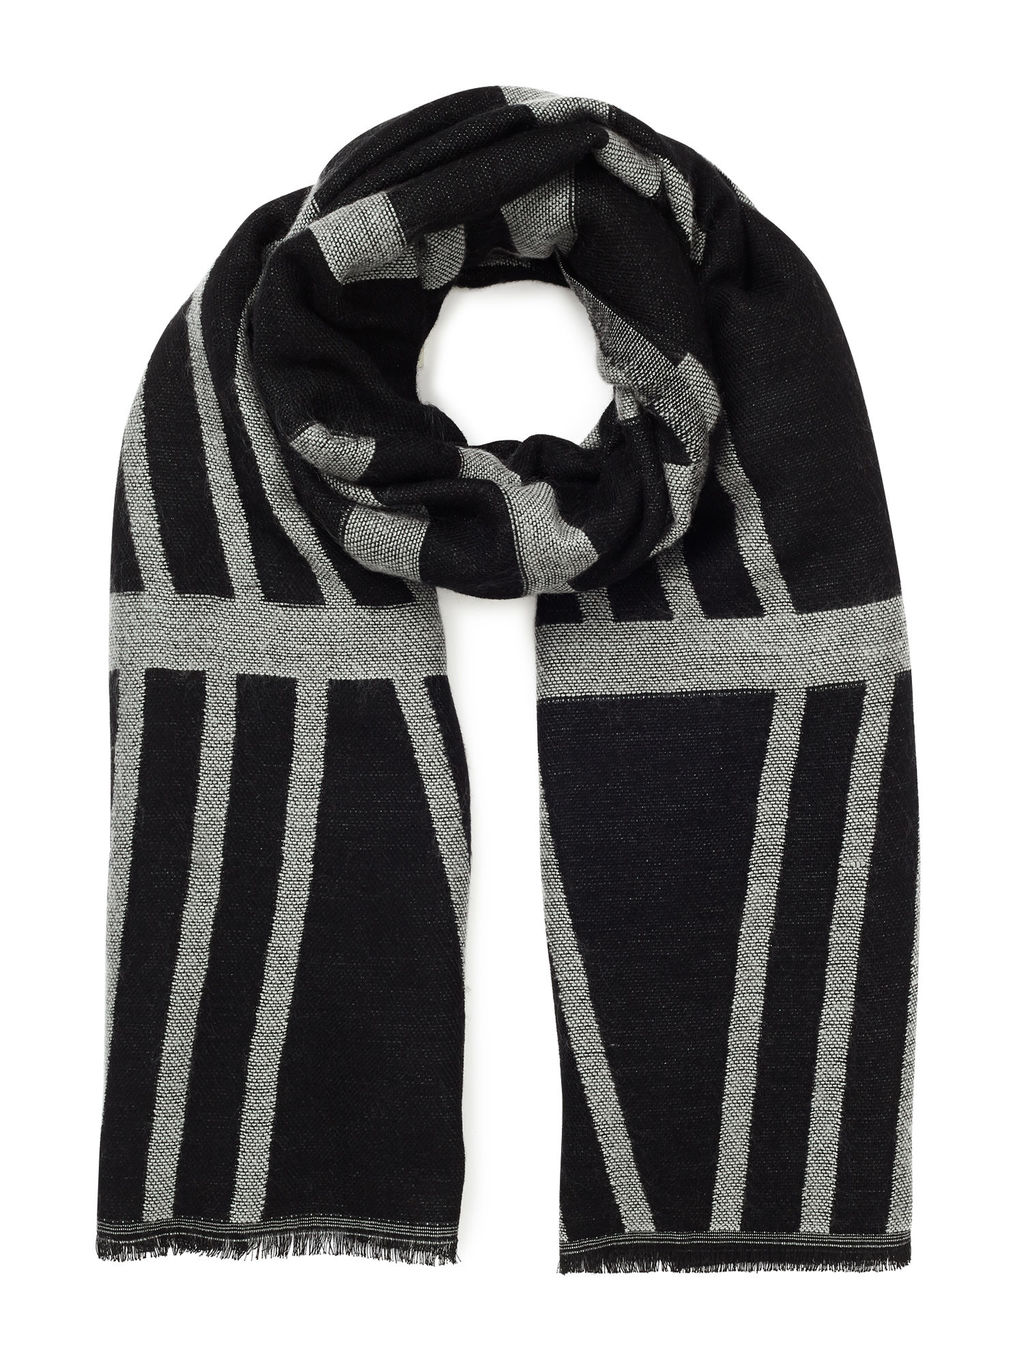 Geo Stripe Scarf - secondary colour: light grey; predominant colour: black; occasions: casual; type of pattern: standard; style: regular; size: standard; material: knits; pattern: striped; season: a/w 2016; wardrobe: highlight